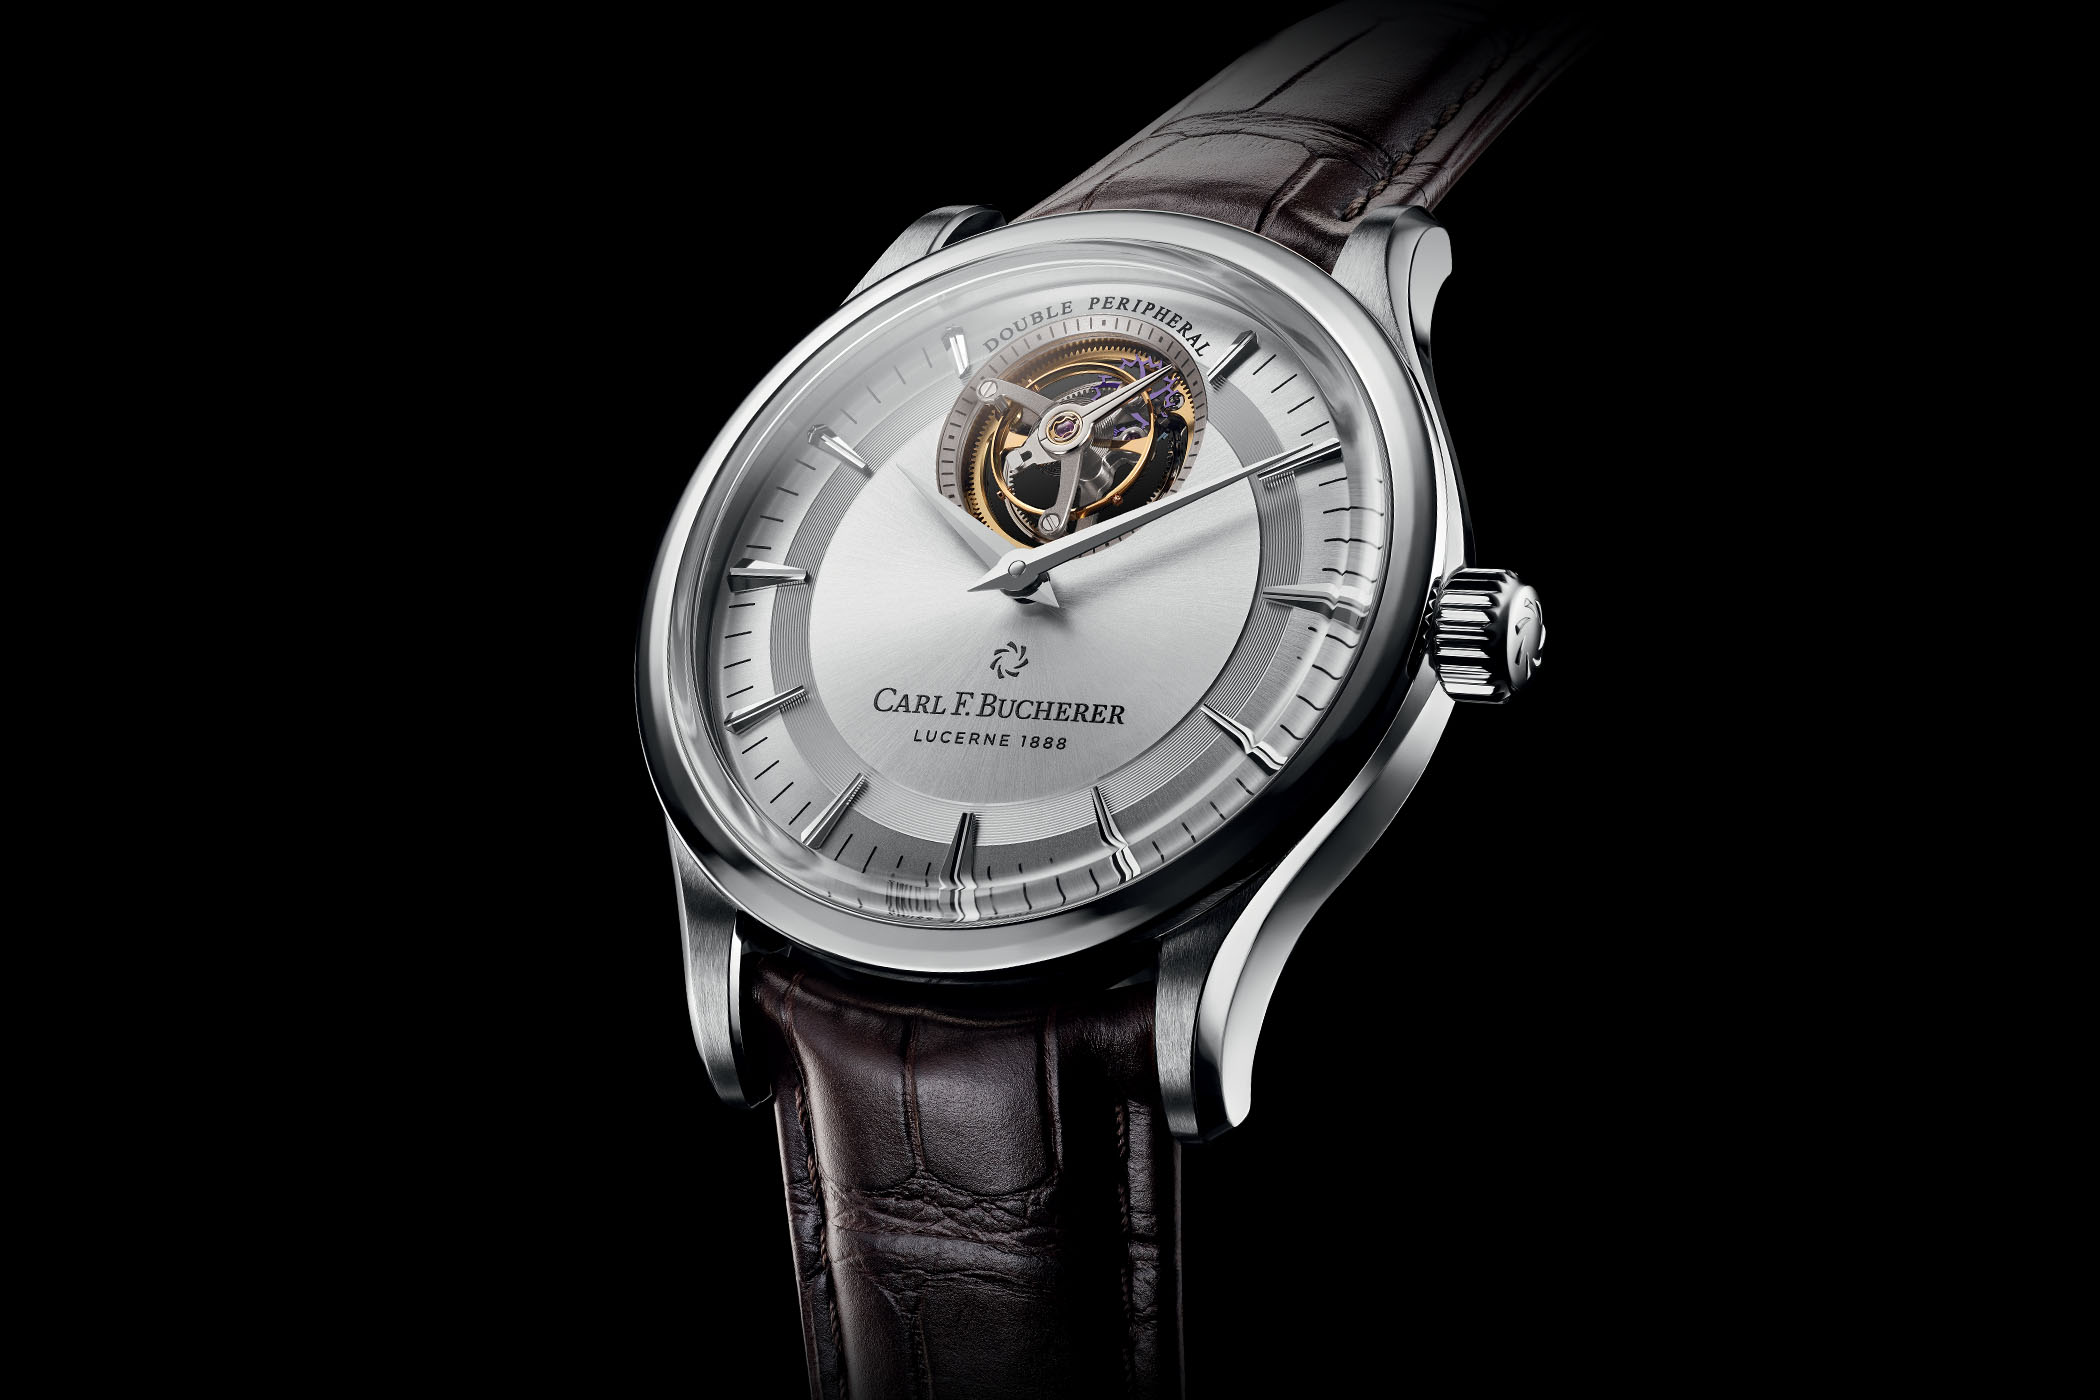 Carl F. Bucherer Heritage Tourbillon DoublePeripheral White Gold